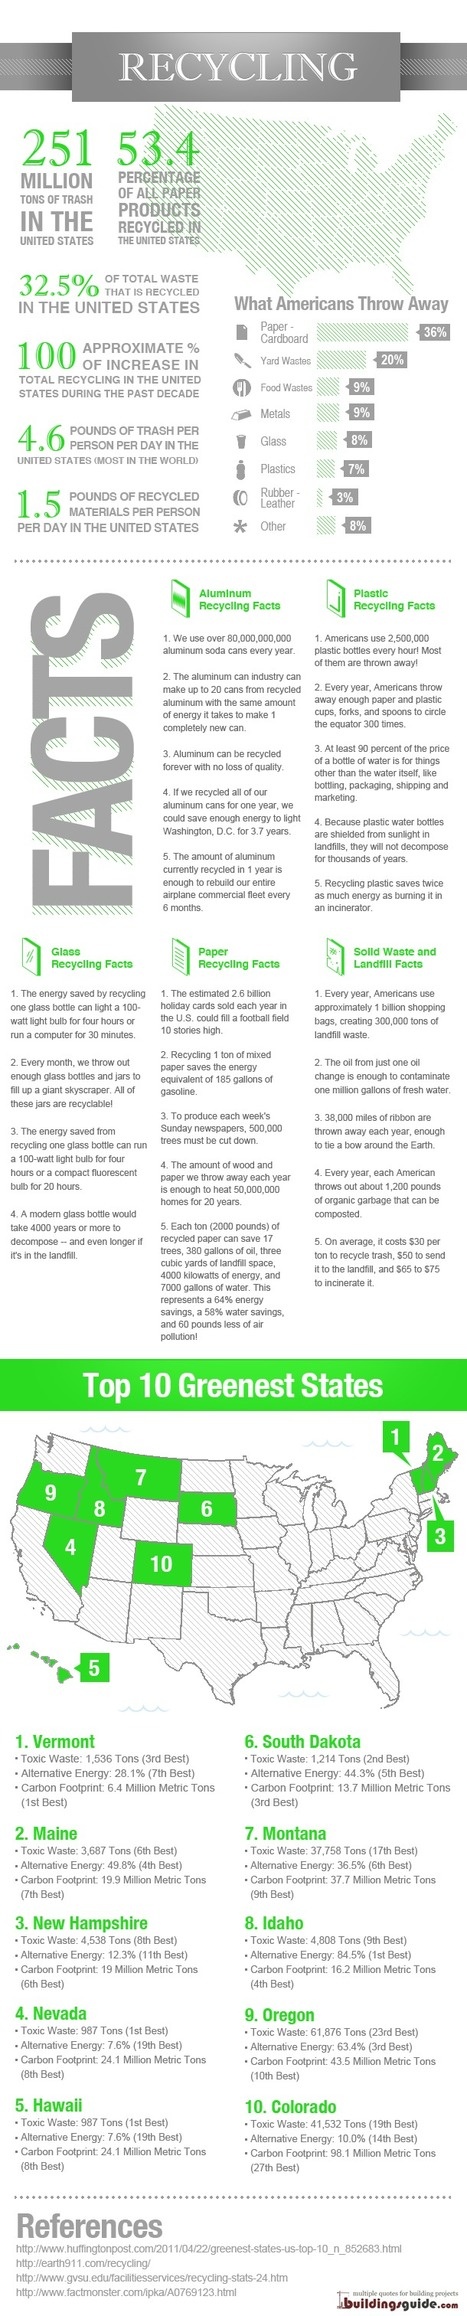 "[INFOGRAPHIC] BuildingsGuide.com's Recycling Facts and Statistics: ""Reduce, Reuse, Recycle"" 